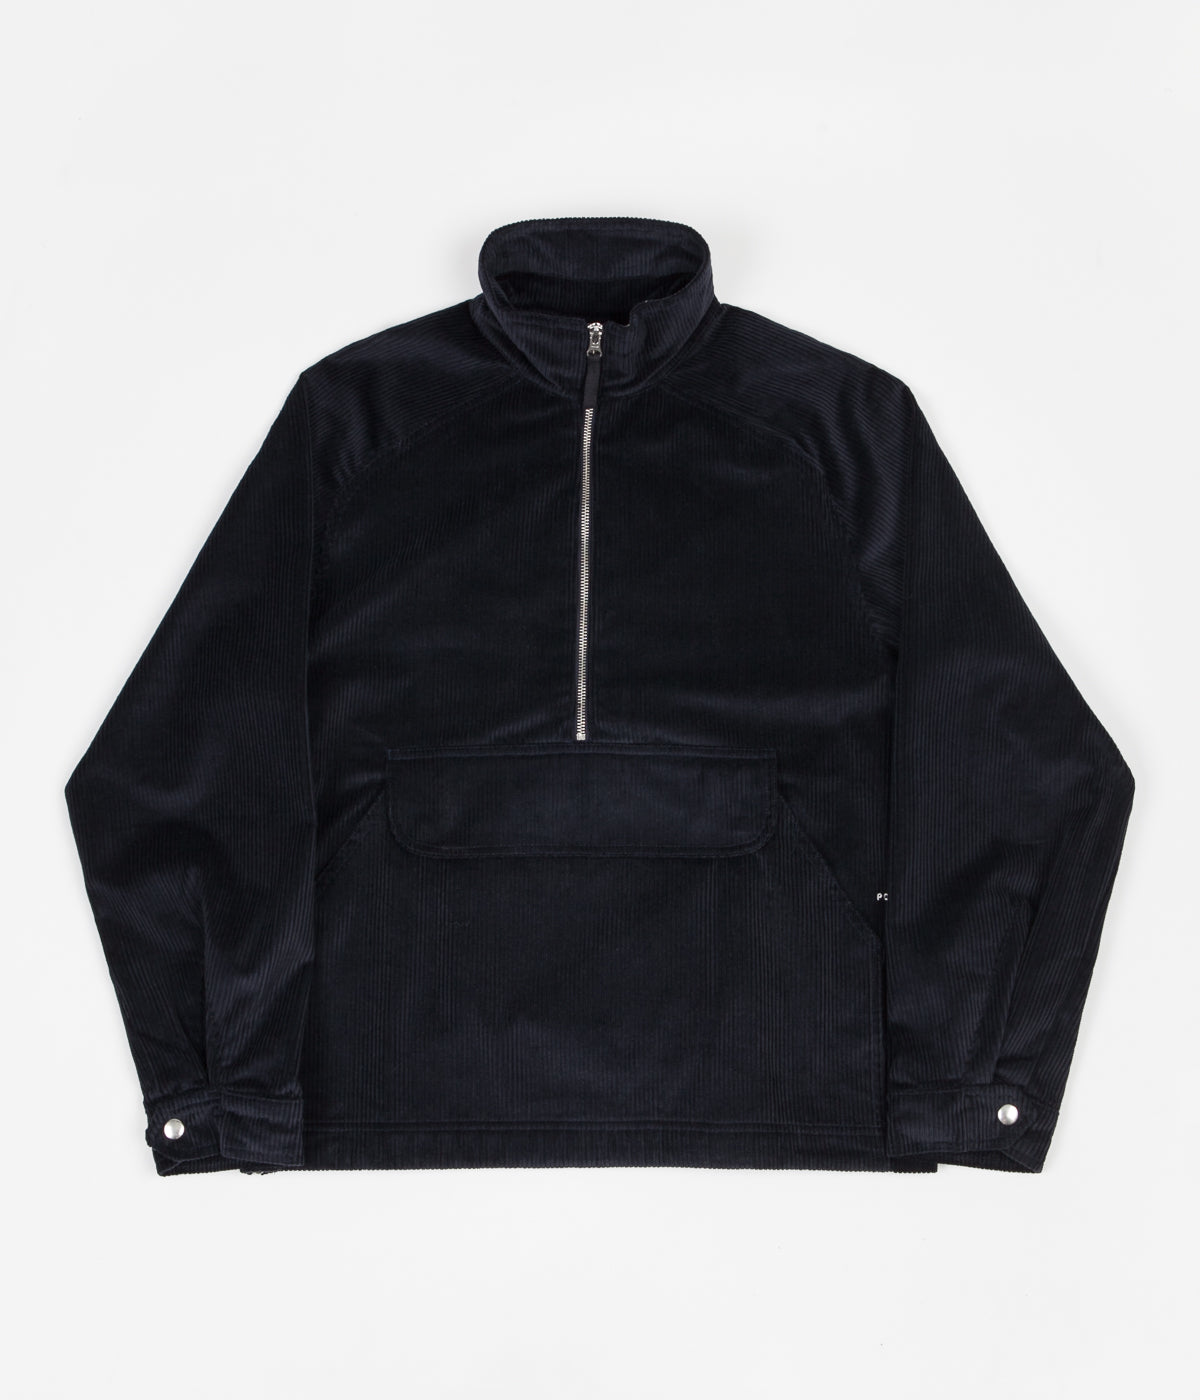 Pop Trading Company DRS Half Zip Jacket - Navy